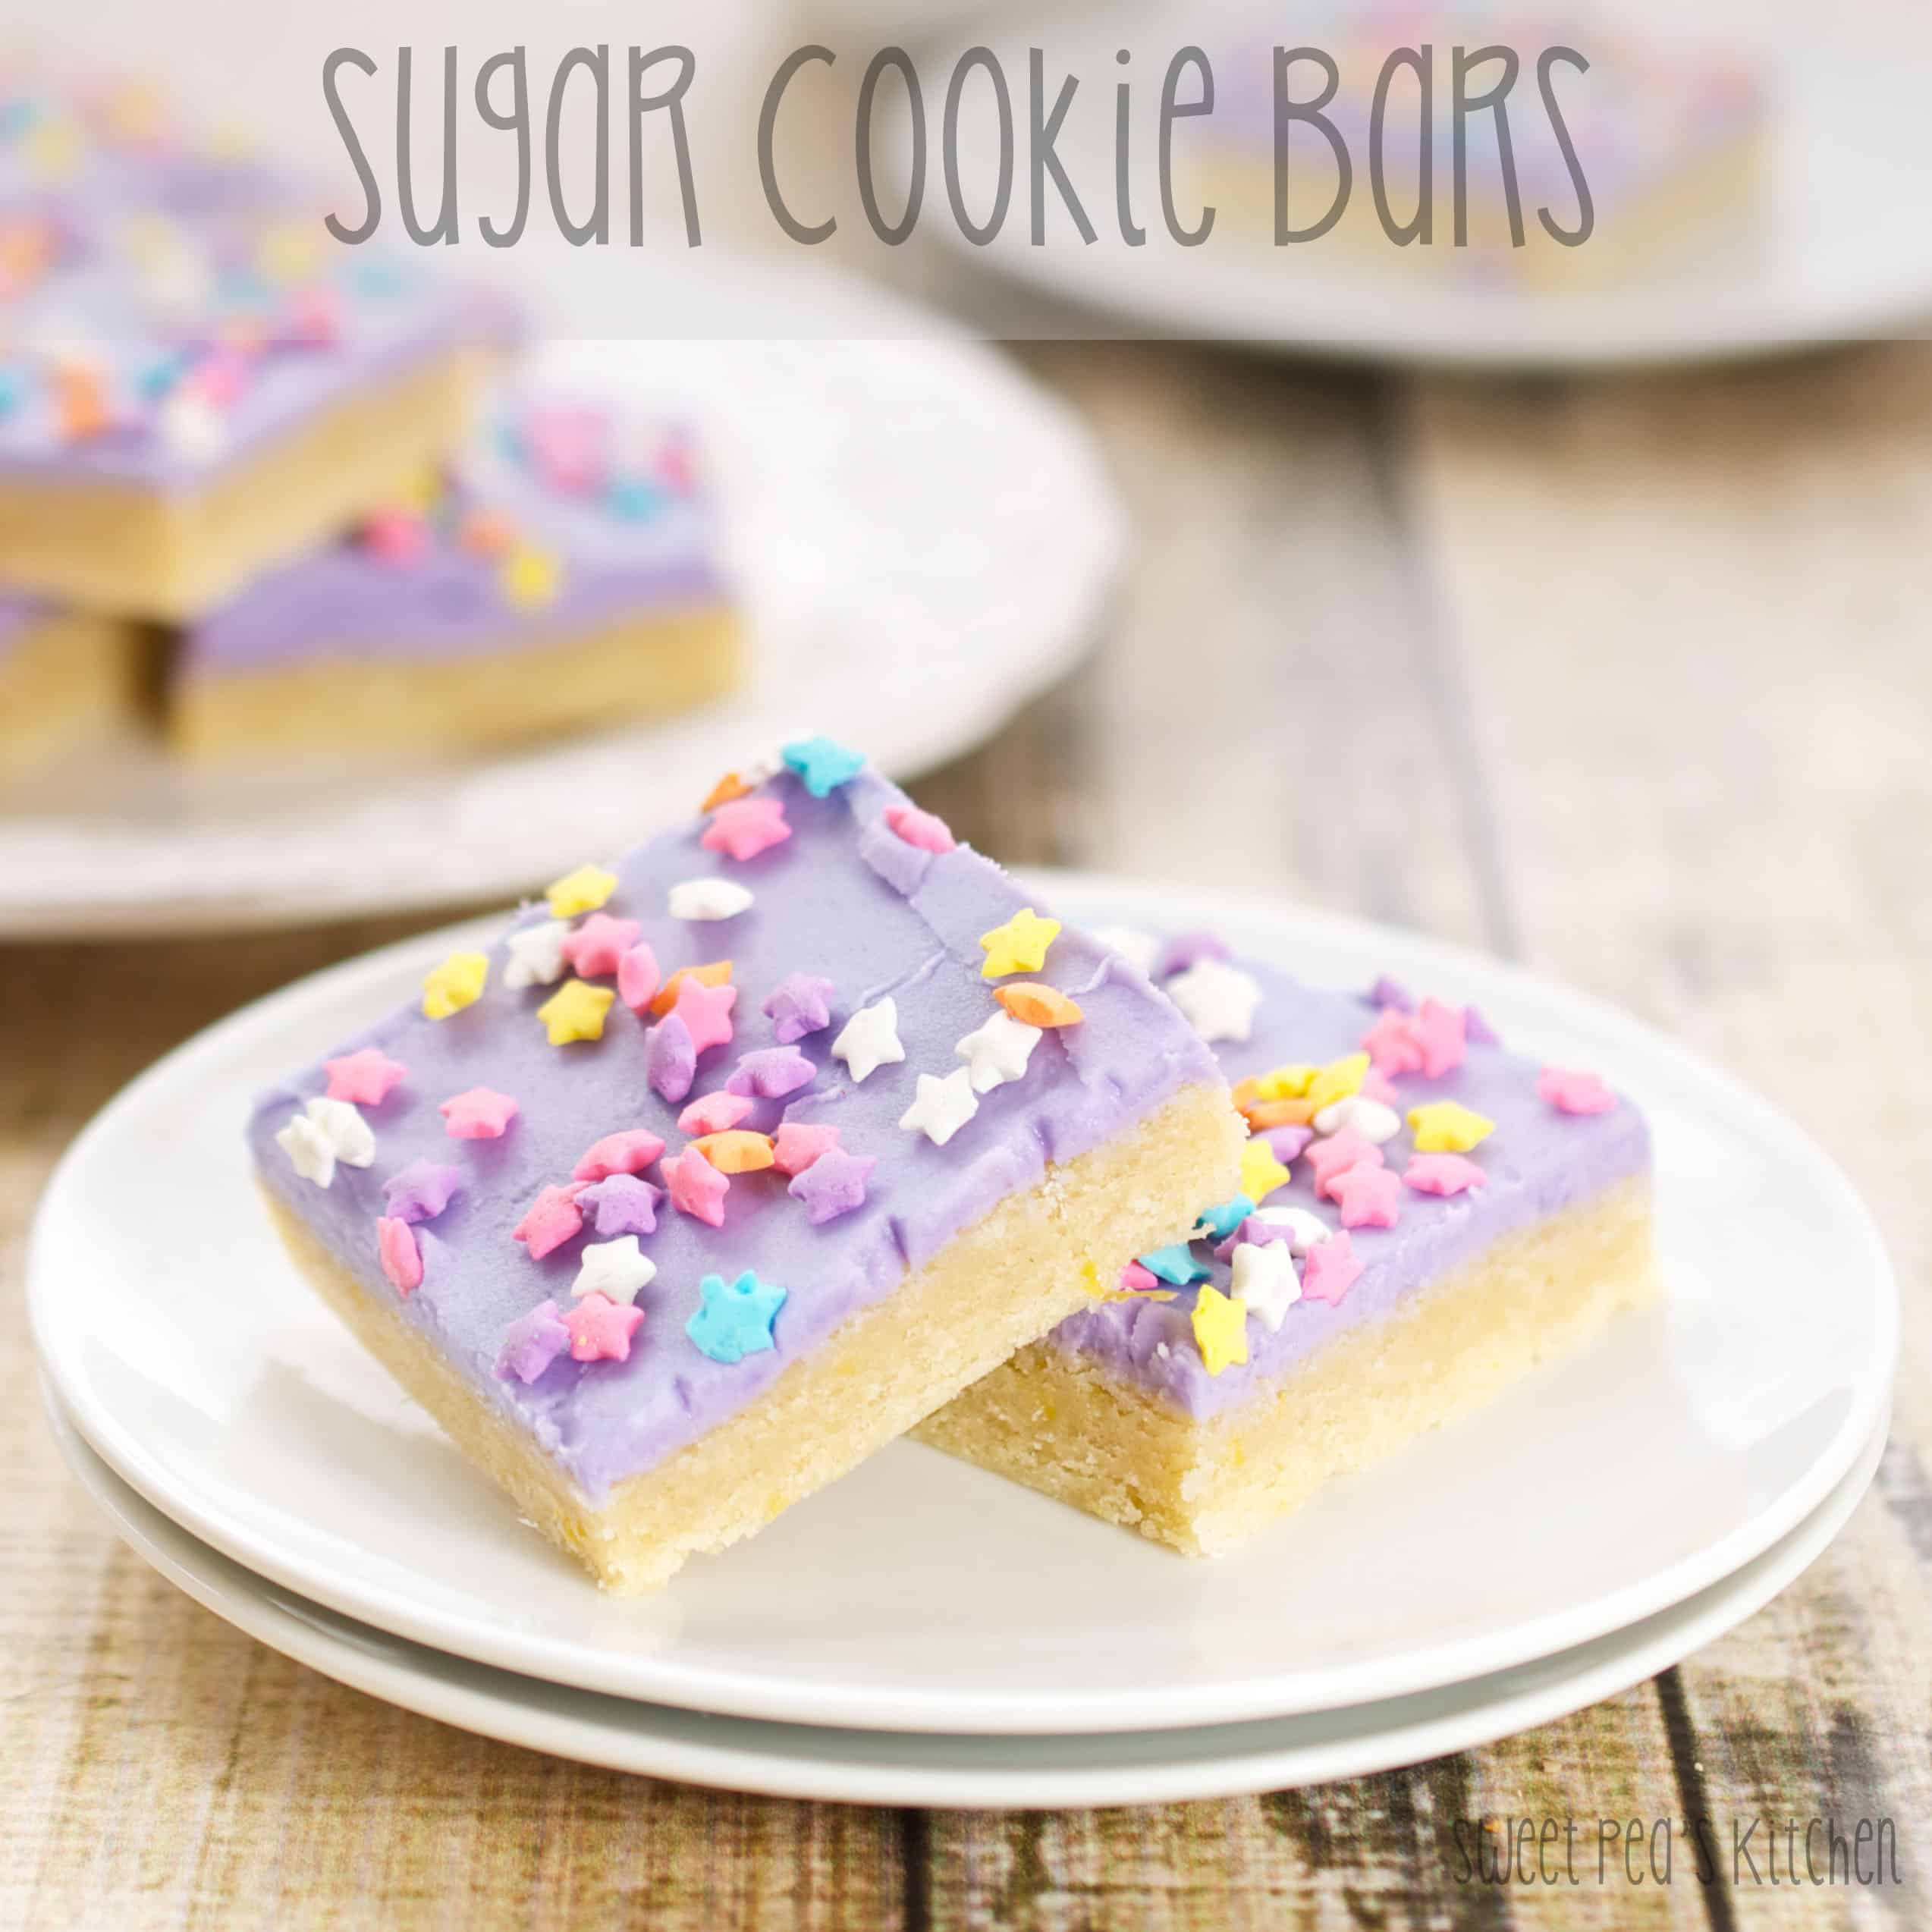 The Best Easy Sugar Cookie Bars Recipe - Enjoy these Sugar Cookie Bars without all the fuss of traditional sugar cookies. These easy bar cookies are great for potlucks and parties. Best cookie bar recipe ever! #sugarcookies #barcookies #sugar #bar #easy #cookies #recipe #dessert #best #sweetpeaskitchen